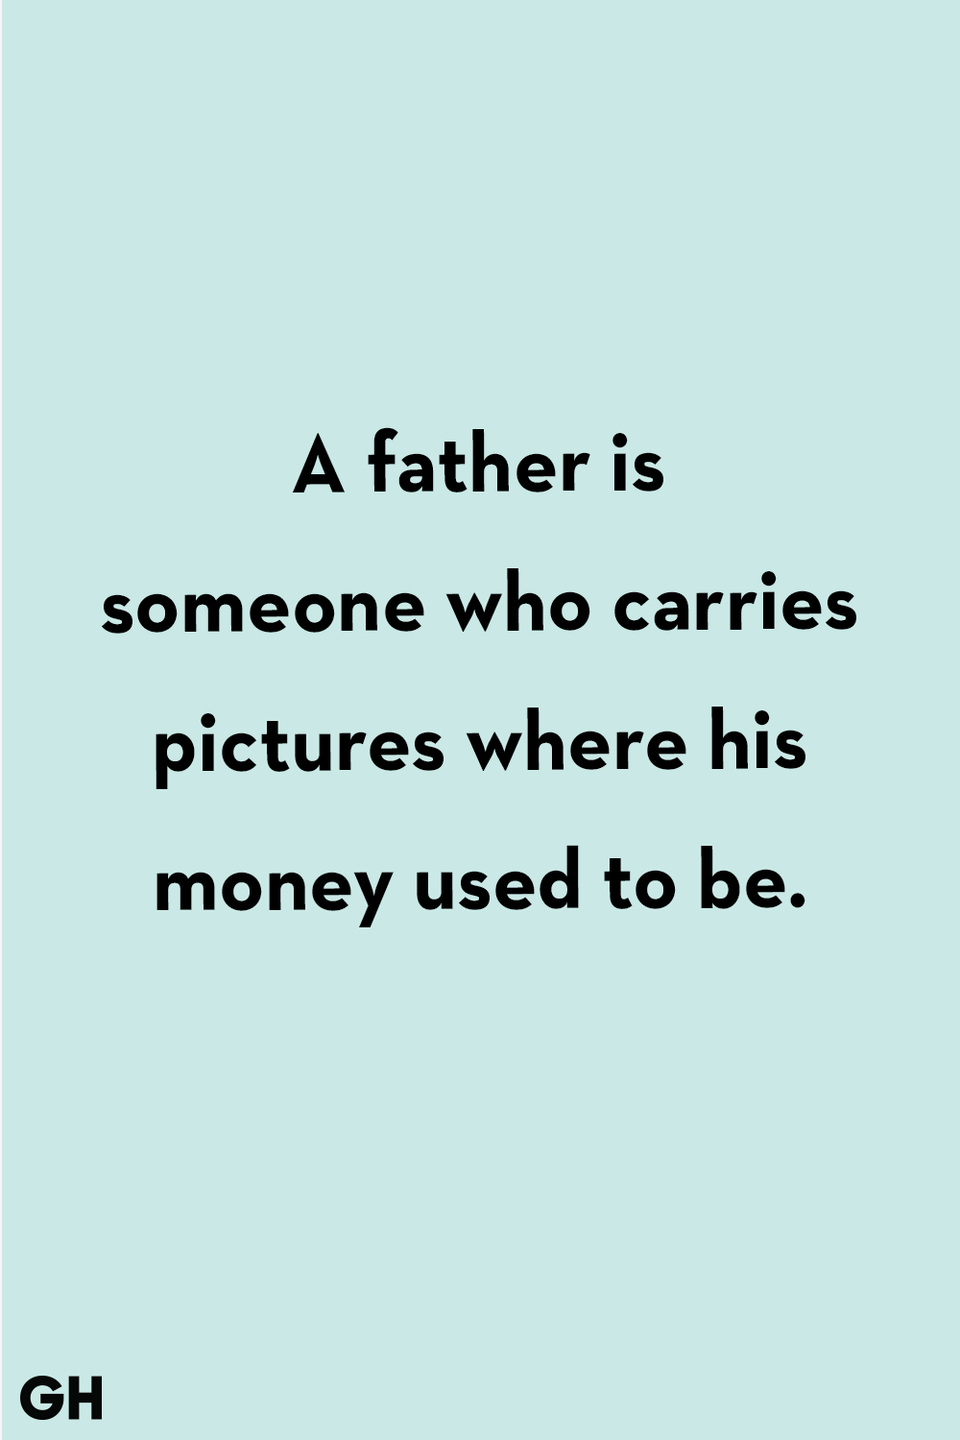 <p>A father is someone who carries pictures where his money used to be.</p>